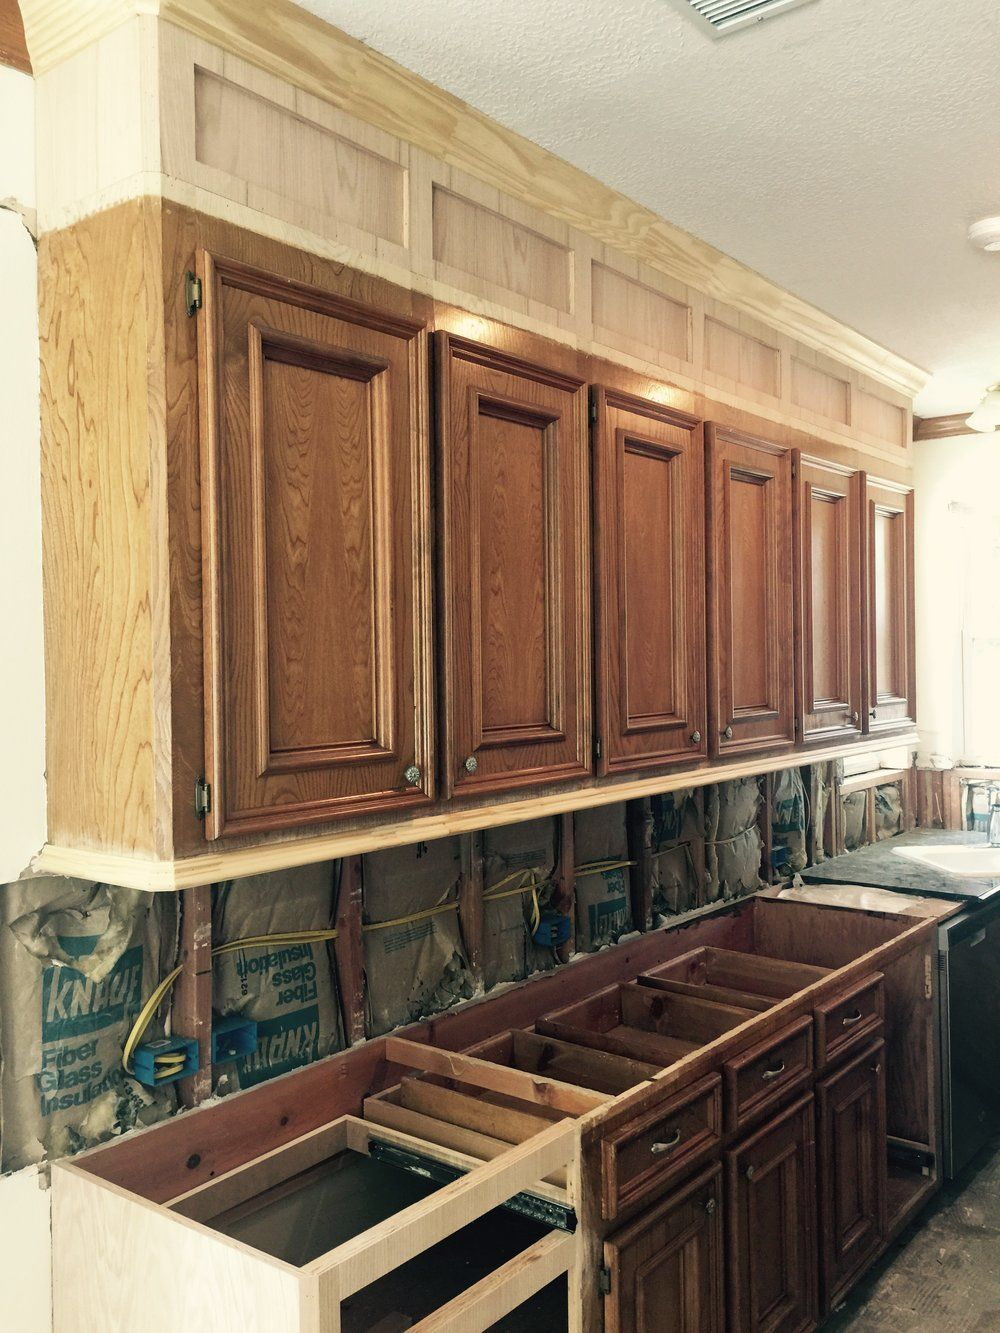 Kitchen cabinets under construction Kitchen cabinets under